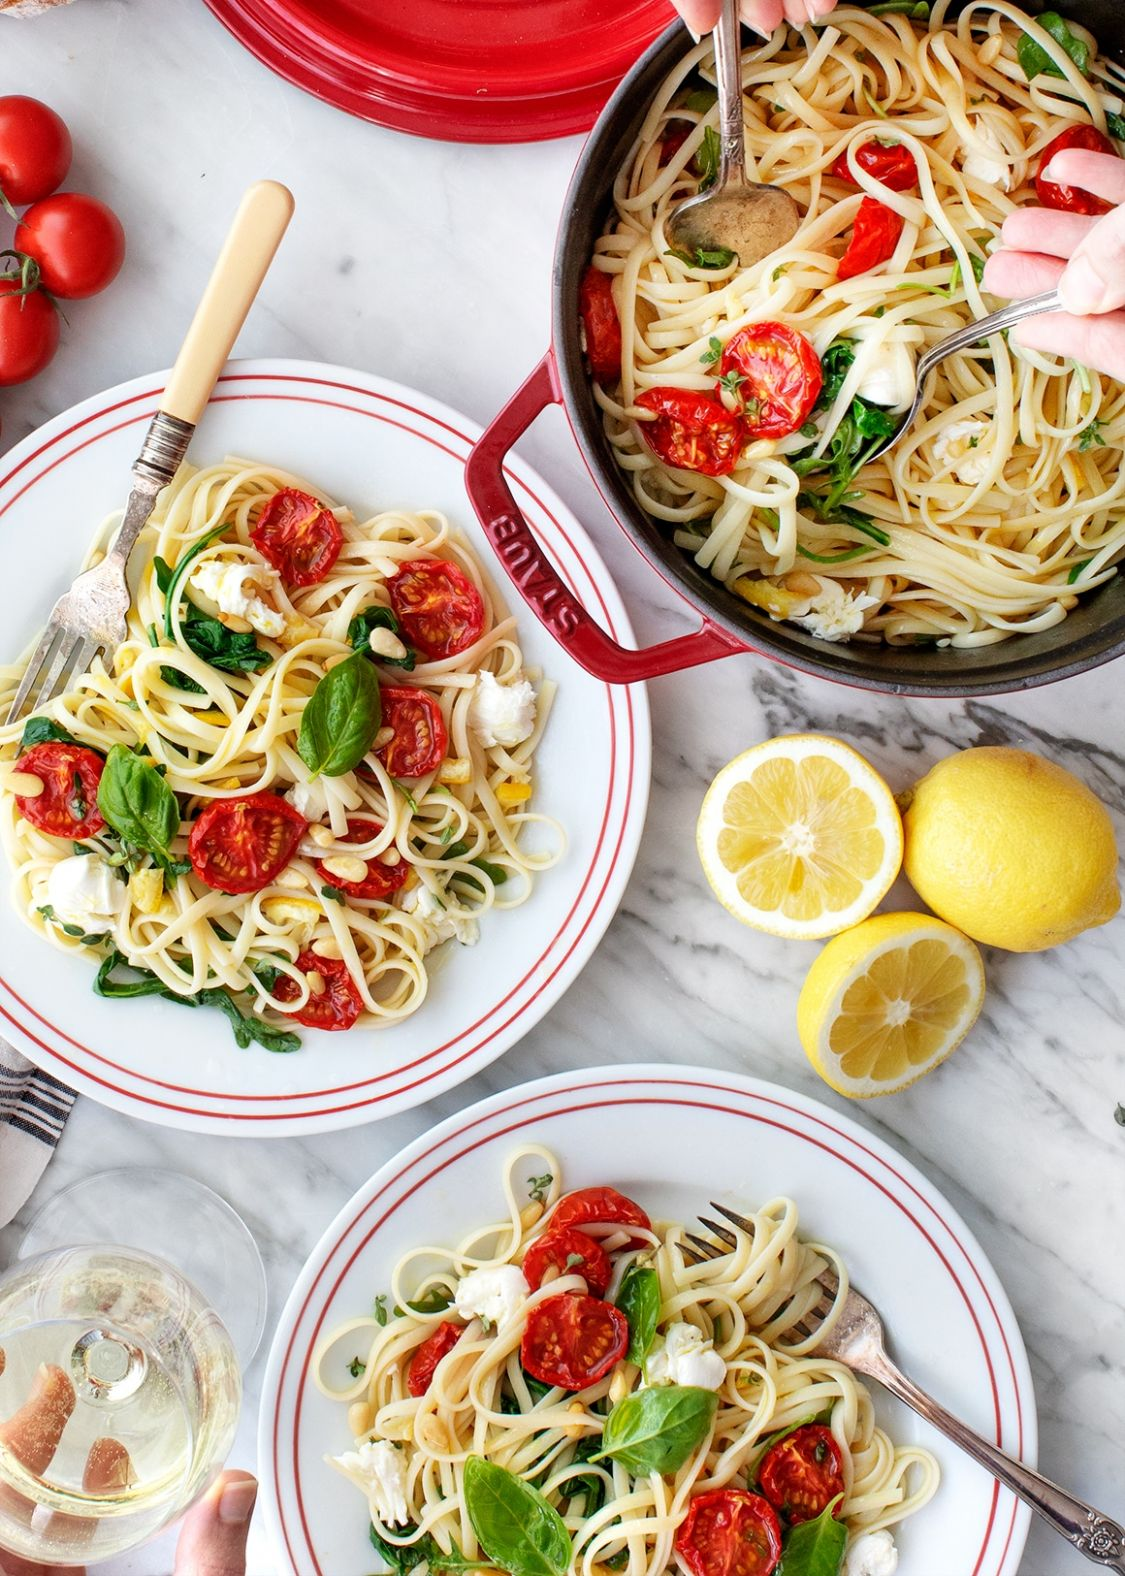 Pasta Recipes: Linguine with Lemon - Recipes Of Pasta Dishes